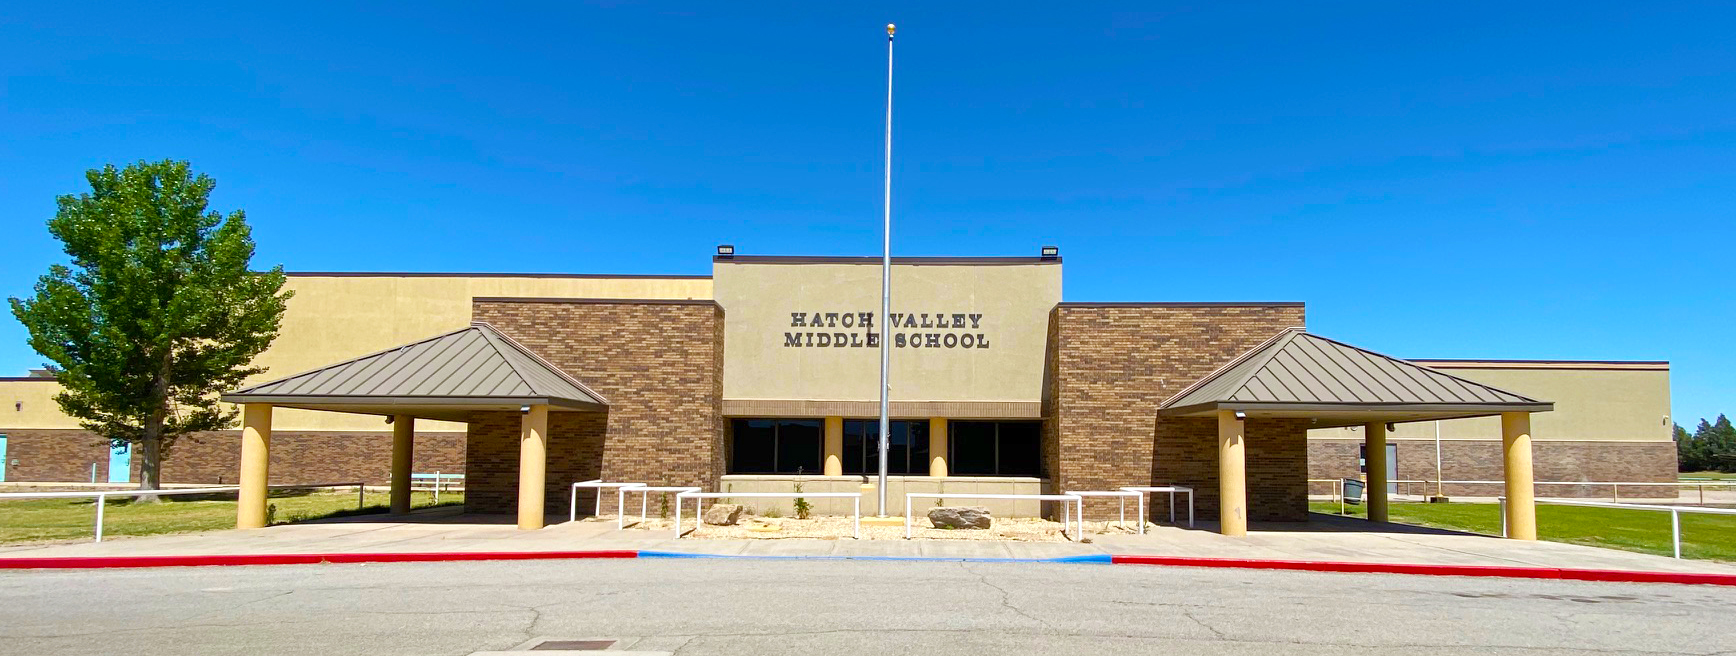 Hatch Valley Middle School